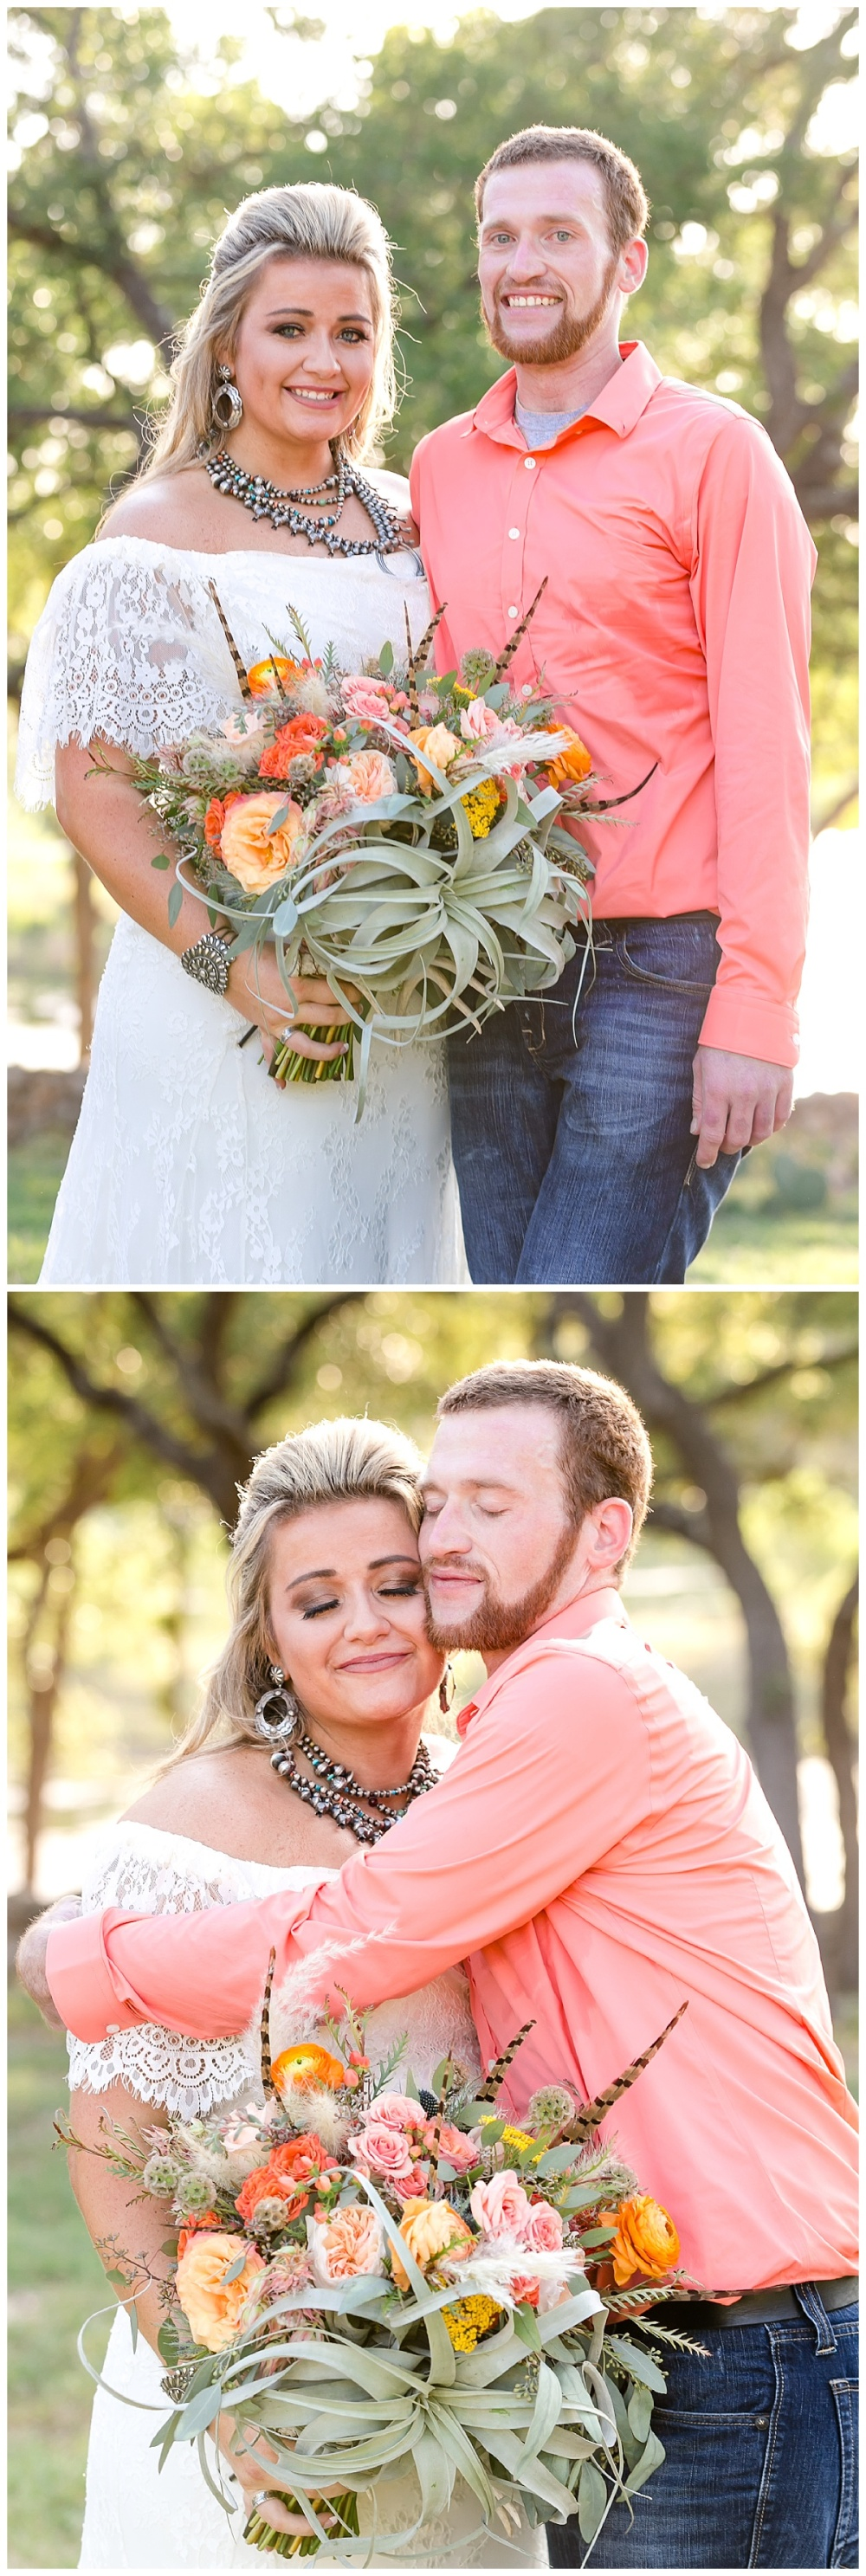 Texas-Wedding-Photographer-Braded-T-Ranch-Kendalia-Bride-Groom-Southwestern-Style-Carly-Barton-Photography-Vogt_0042.jpg